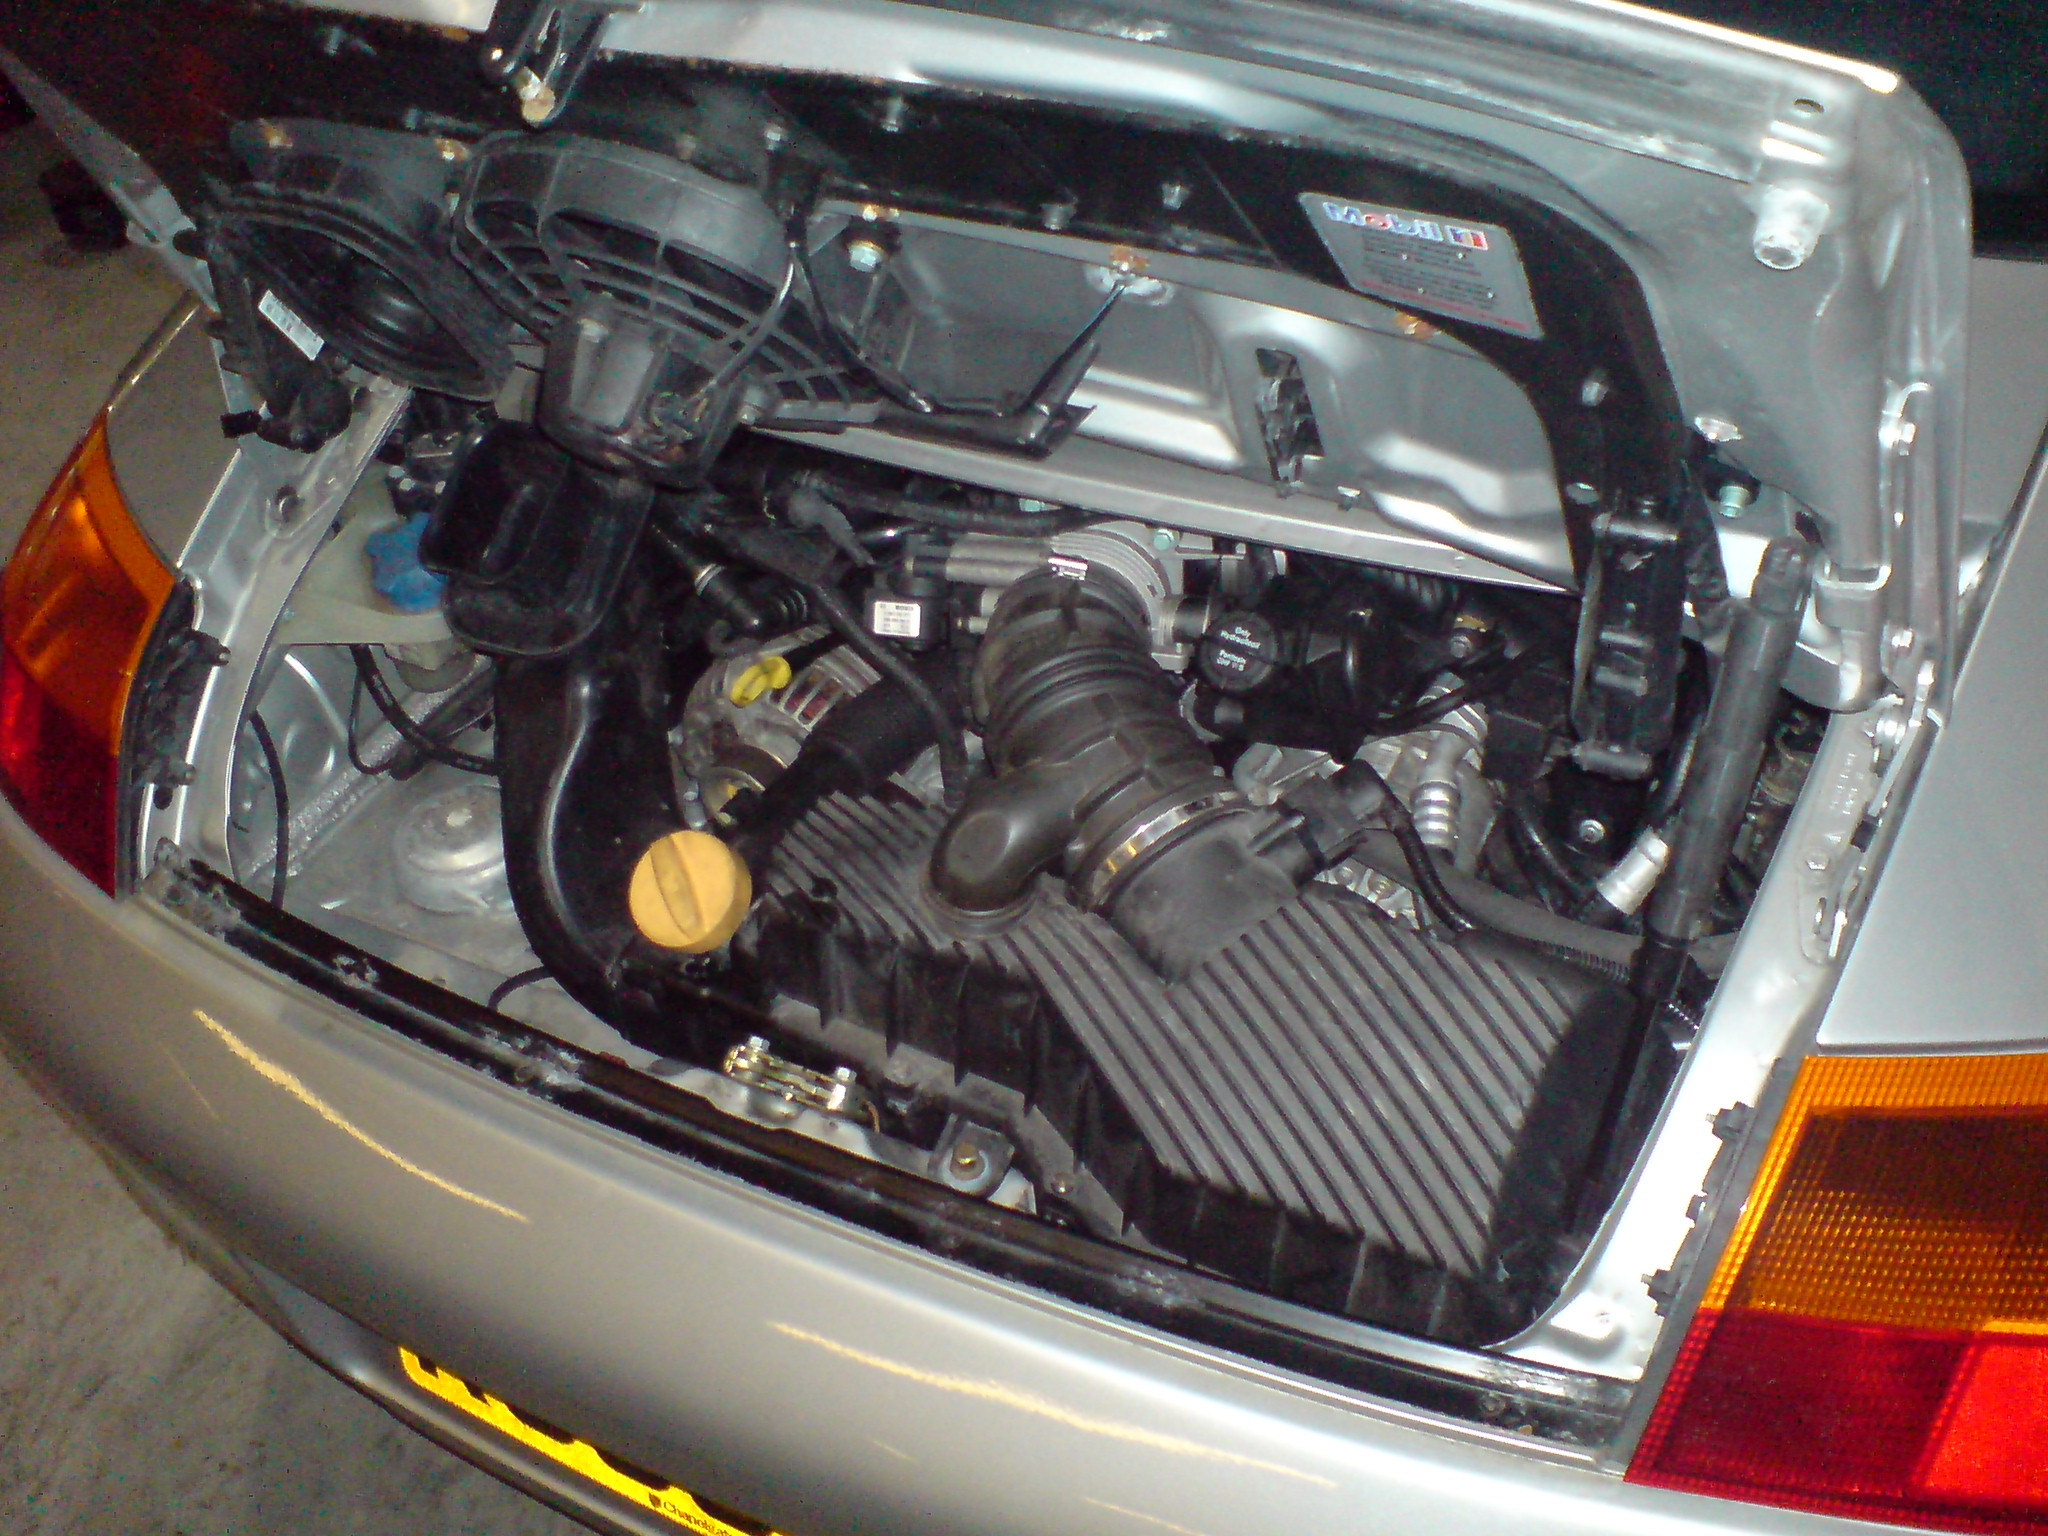 PORSCHE CAYMAN engine